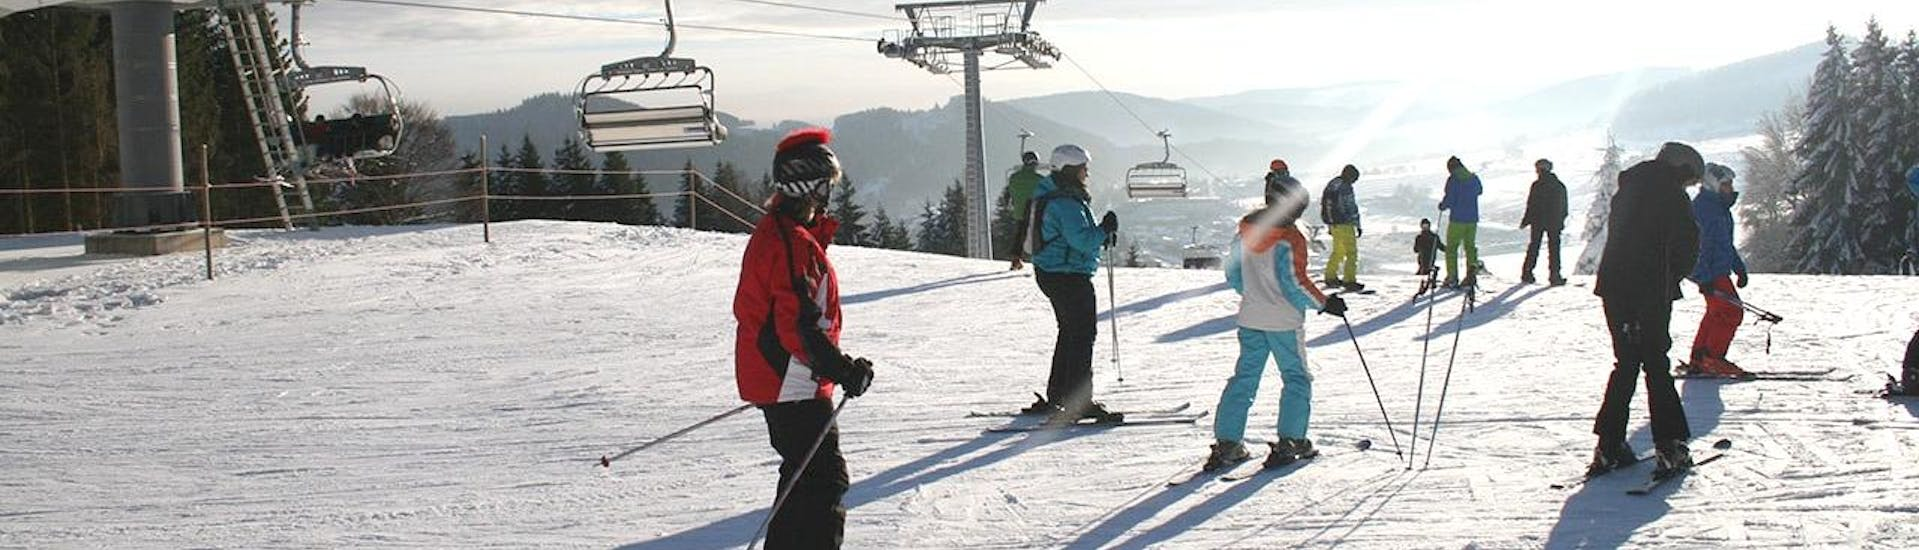 Under the guidance of an experienced ski instructor from the ski school Skischule Snow & Bike Factory Willingen, a group of adults is making great progress during the Ski Lessons for Adults - All Levels - Full Day.